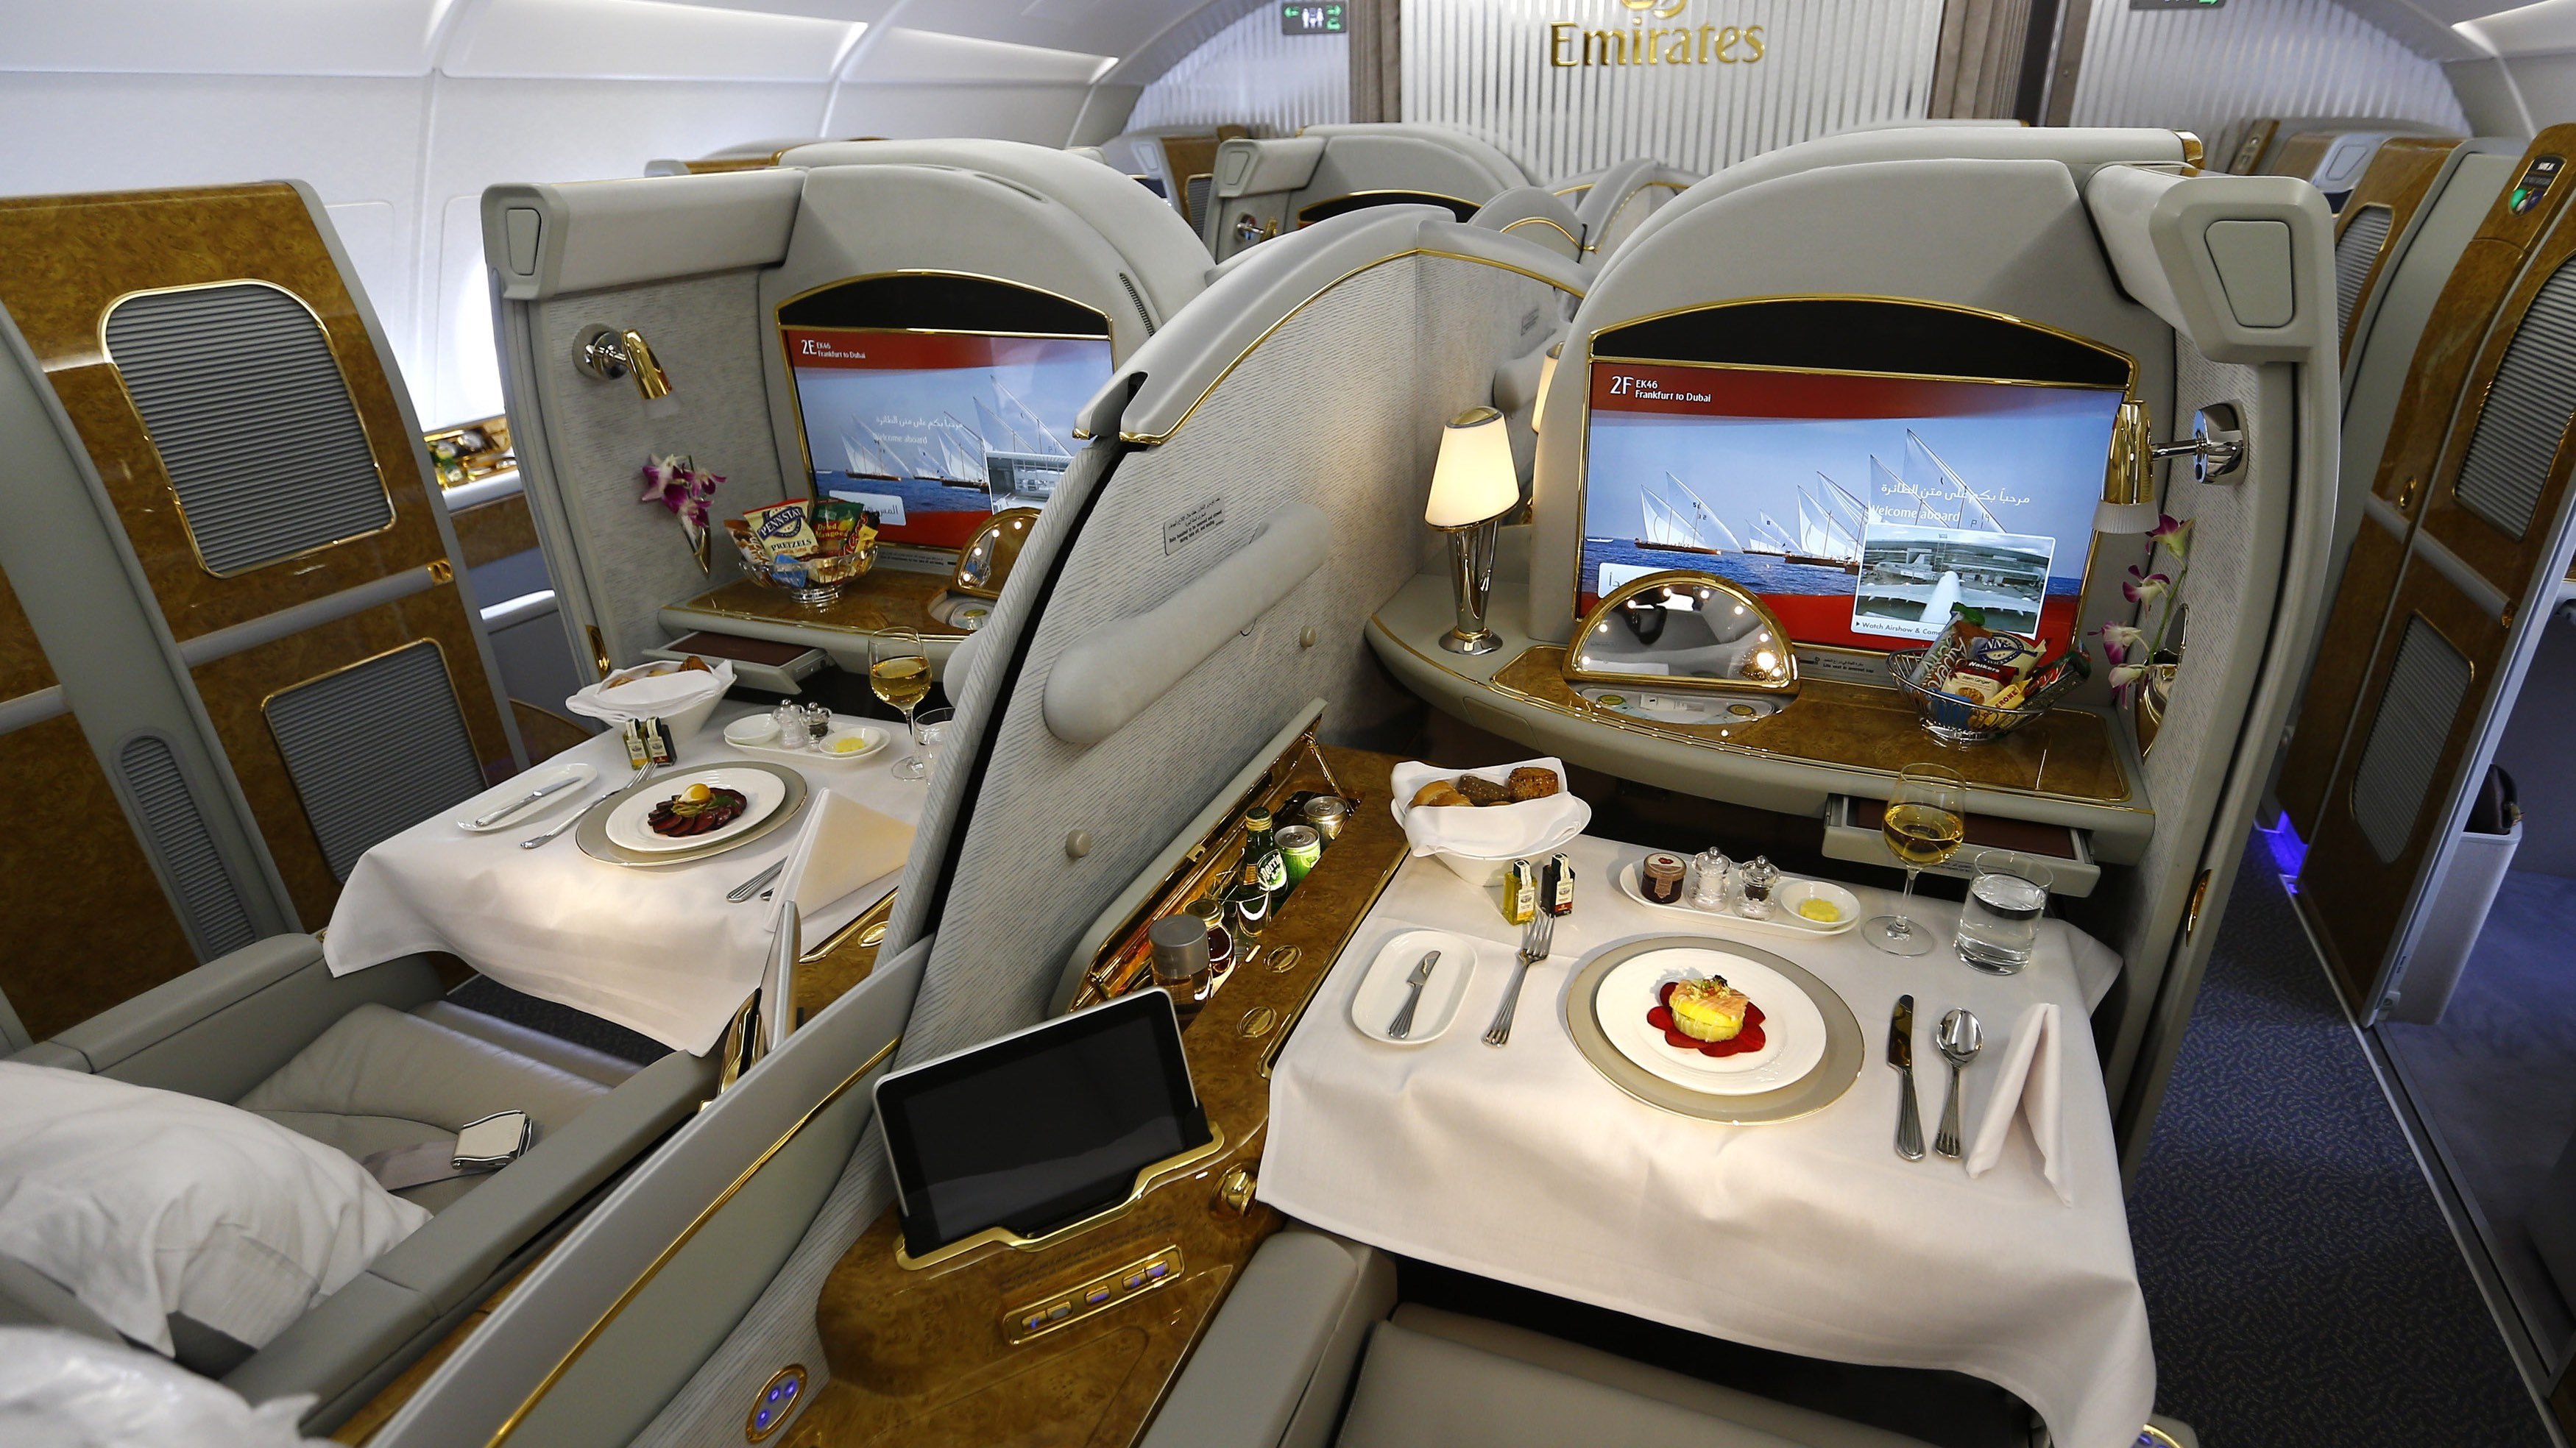 How to get business class upgrades on international flights